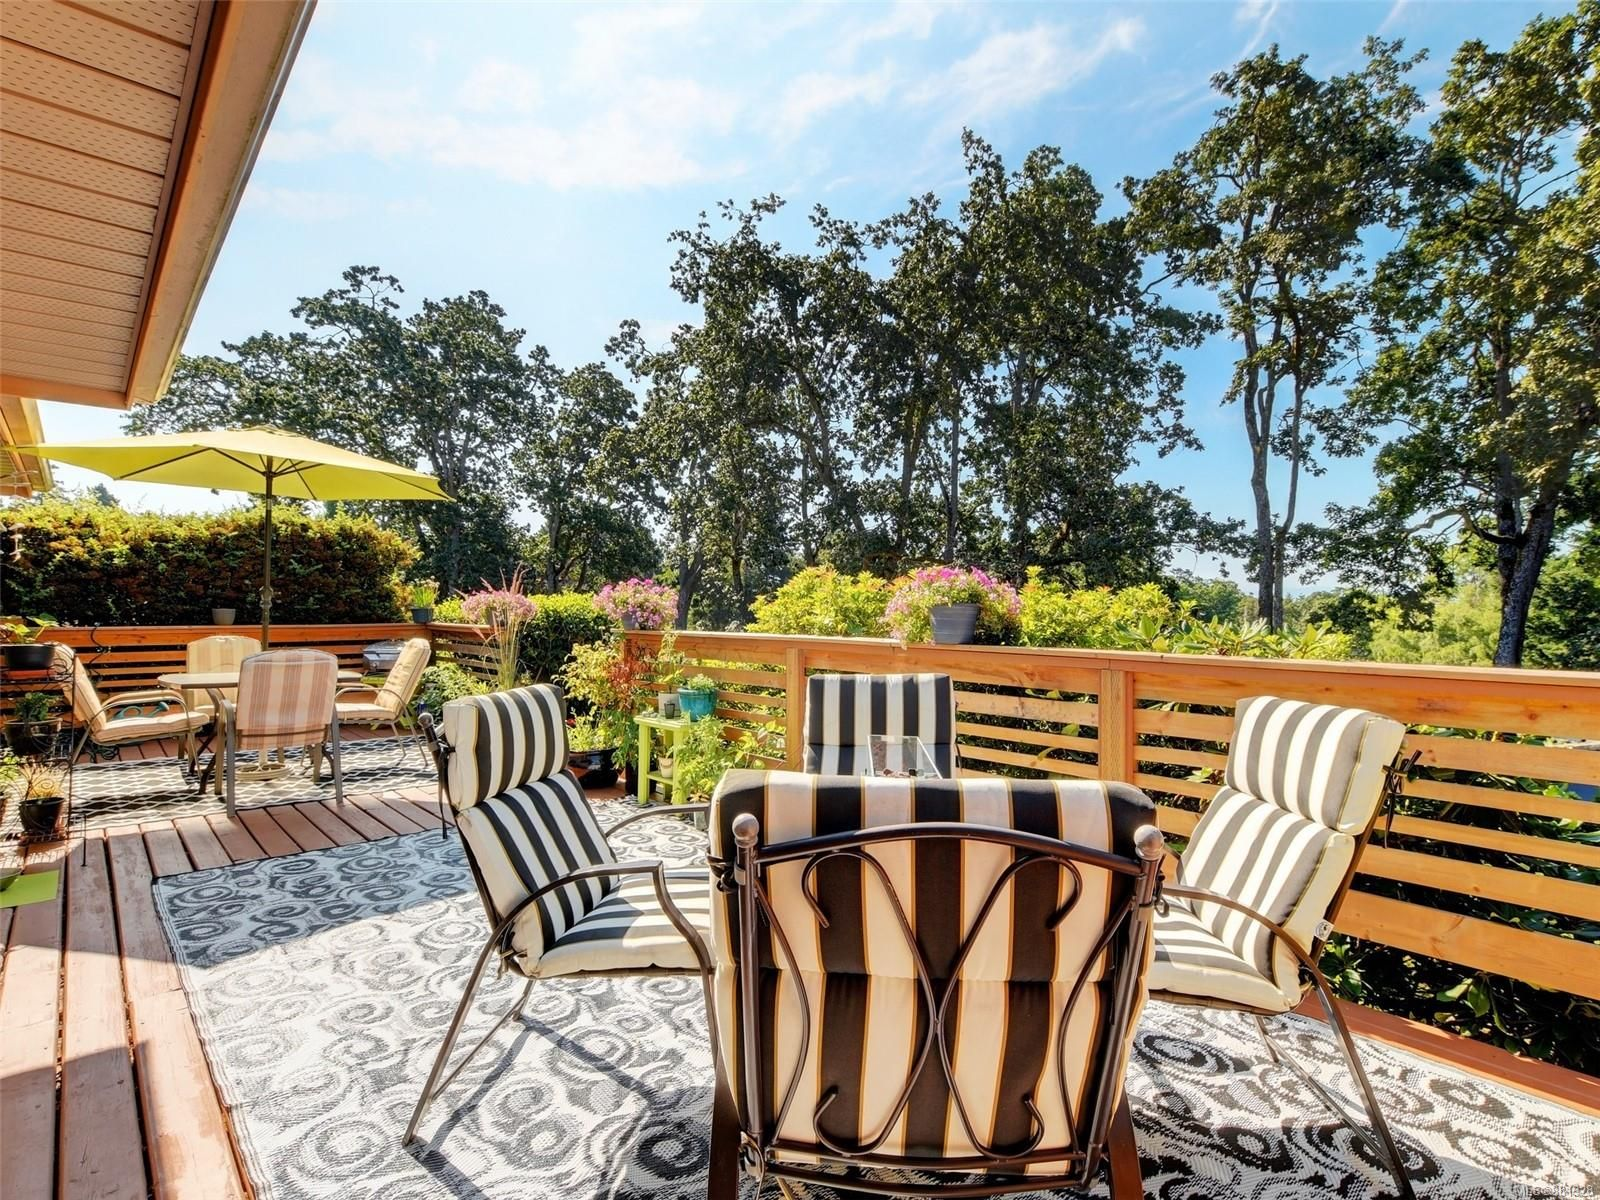 Main Photo: 1017 Southover Lane in : SE Broadmead House for sale (Saanich East)  : MLS®# 881928